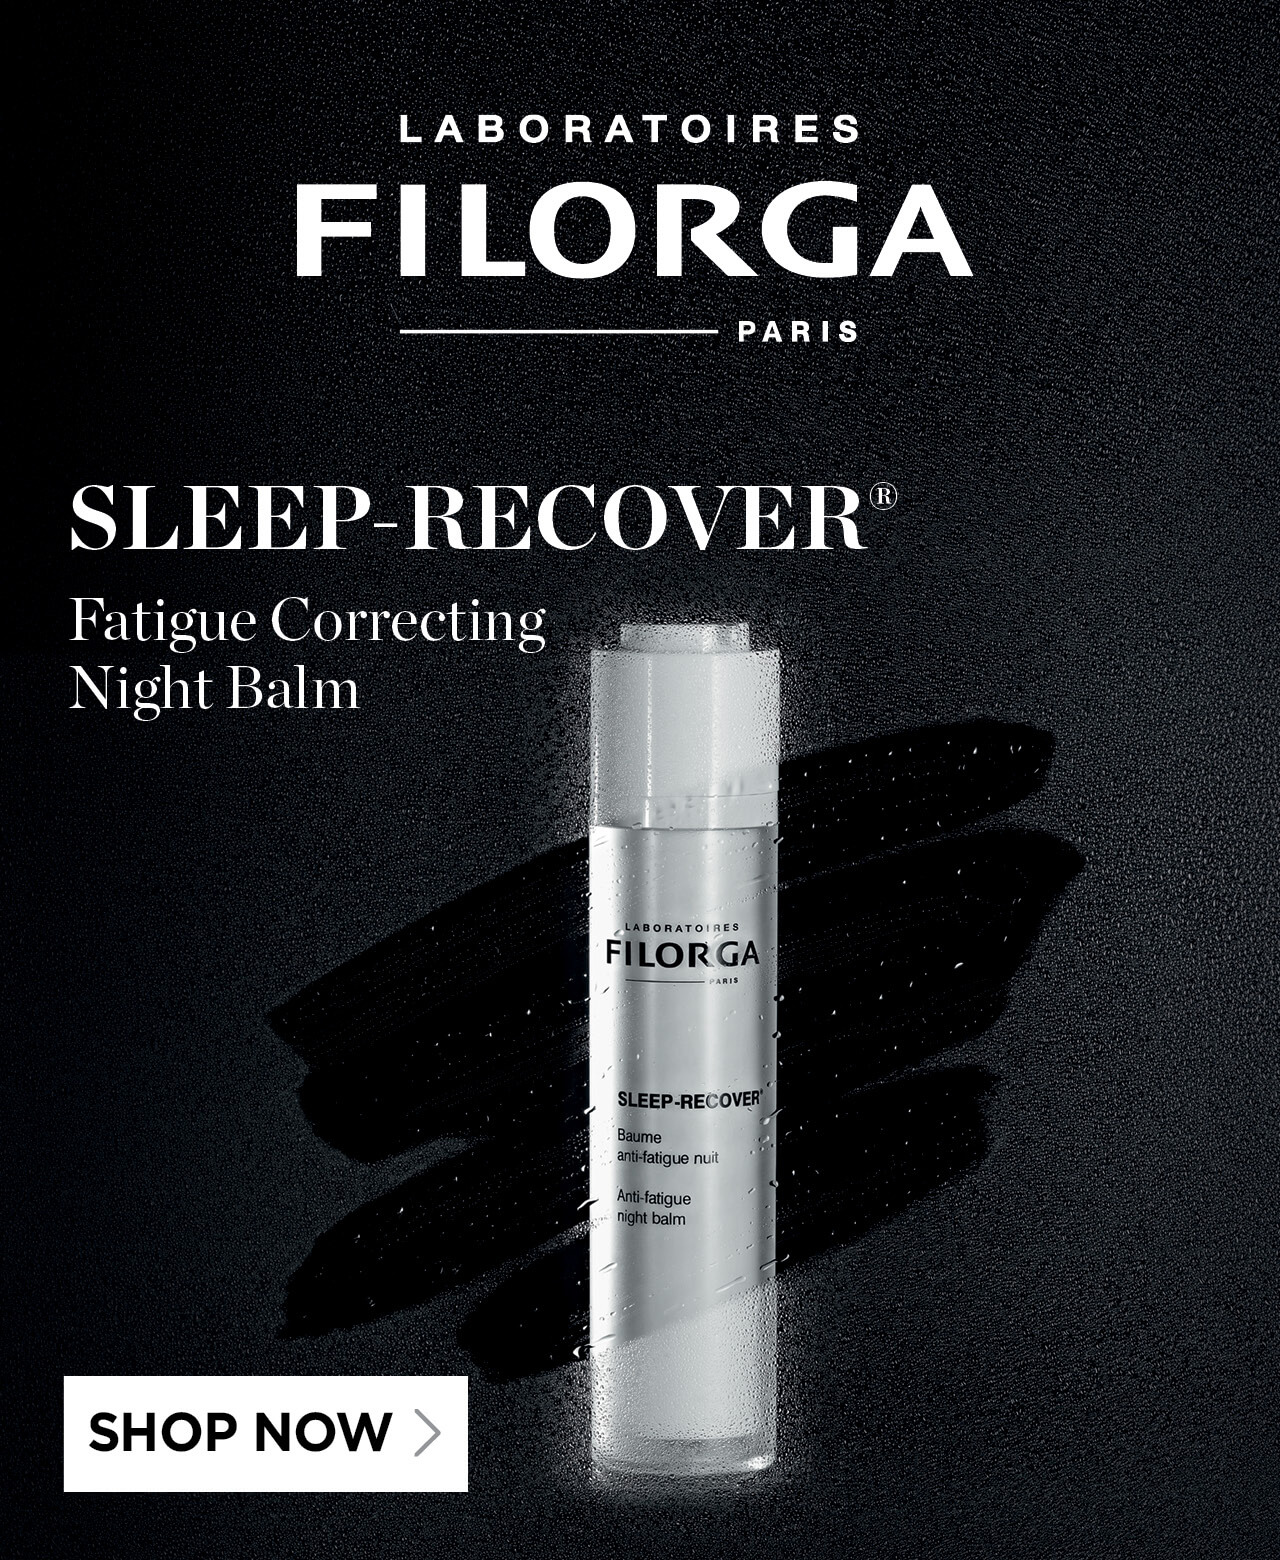 Sleep-Recover Fatigue Correcting Night Balm